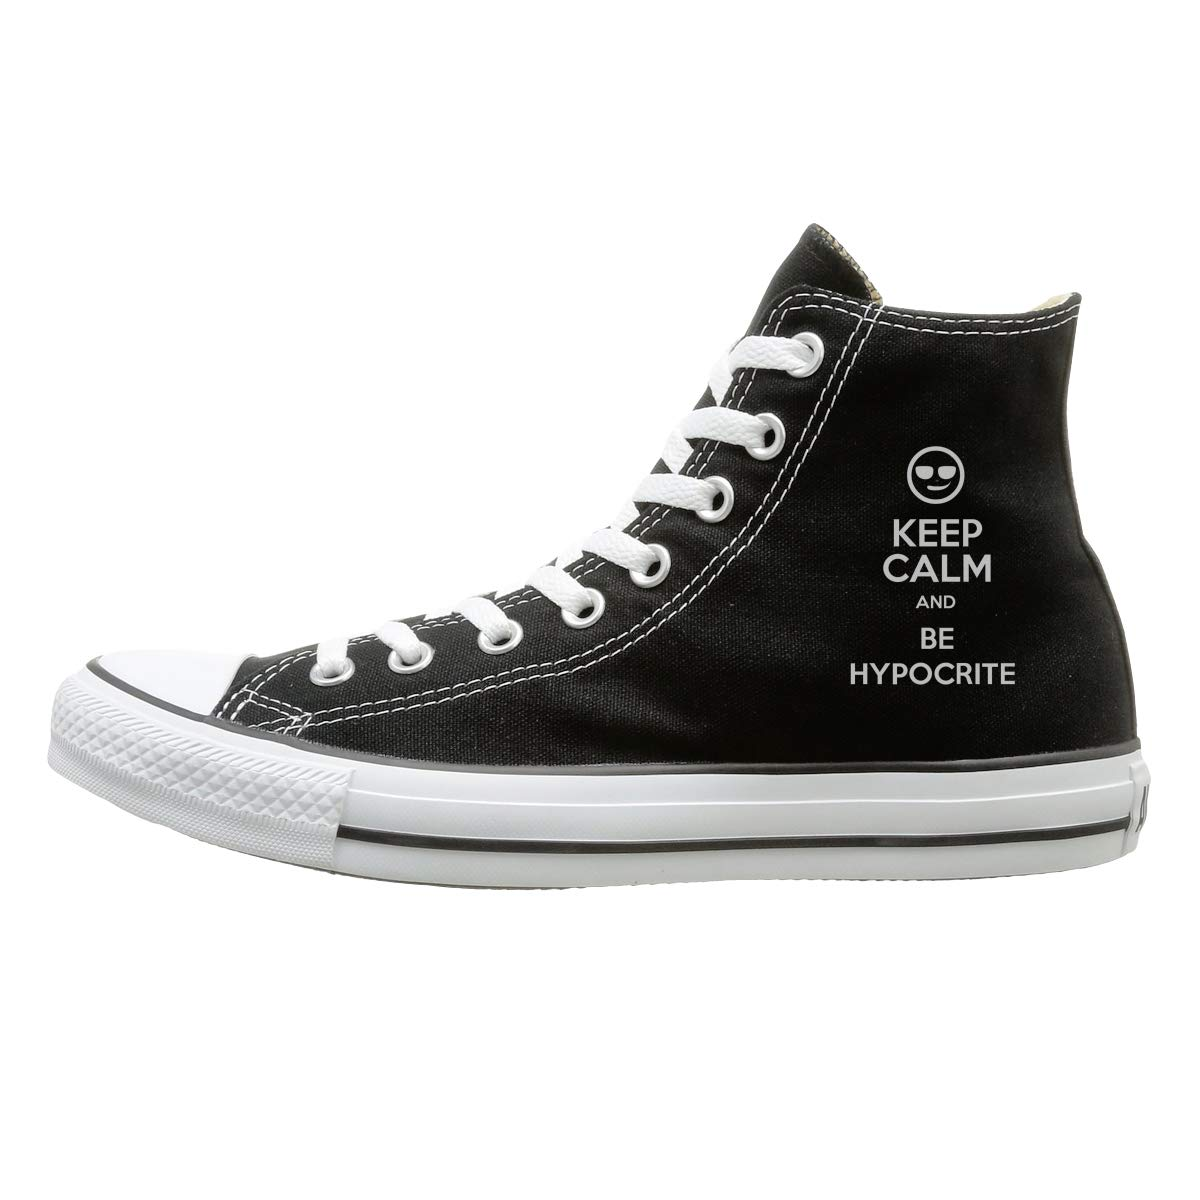 Keep Calm And Be Hypocrite Printed High-top Canvas Shoes Hand-painted Shoes